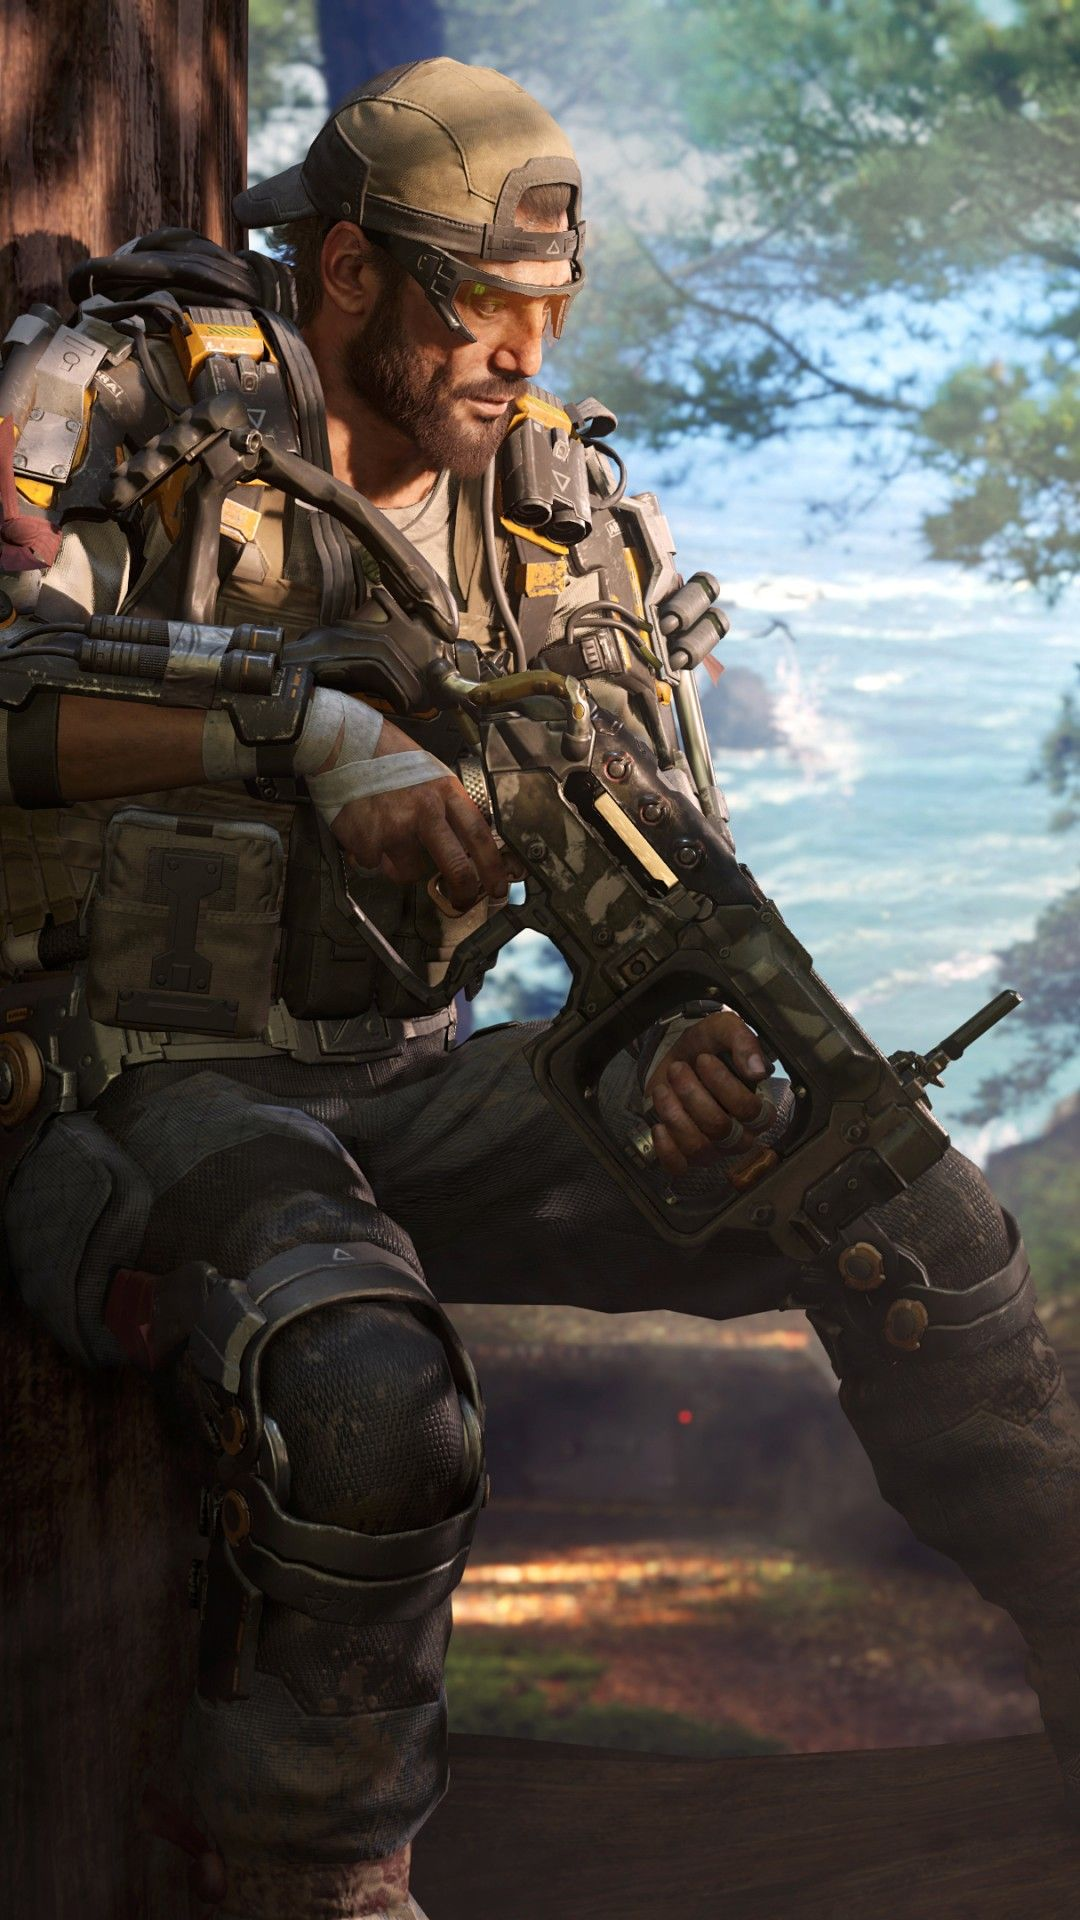 Call of duty black ops 3 wallpaper android download in